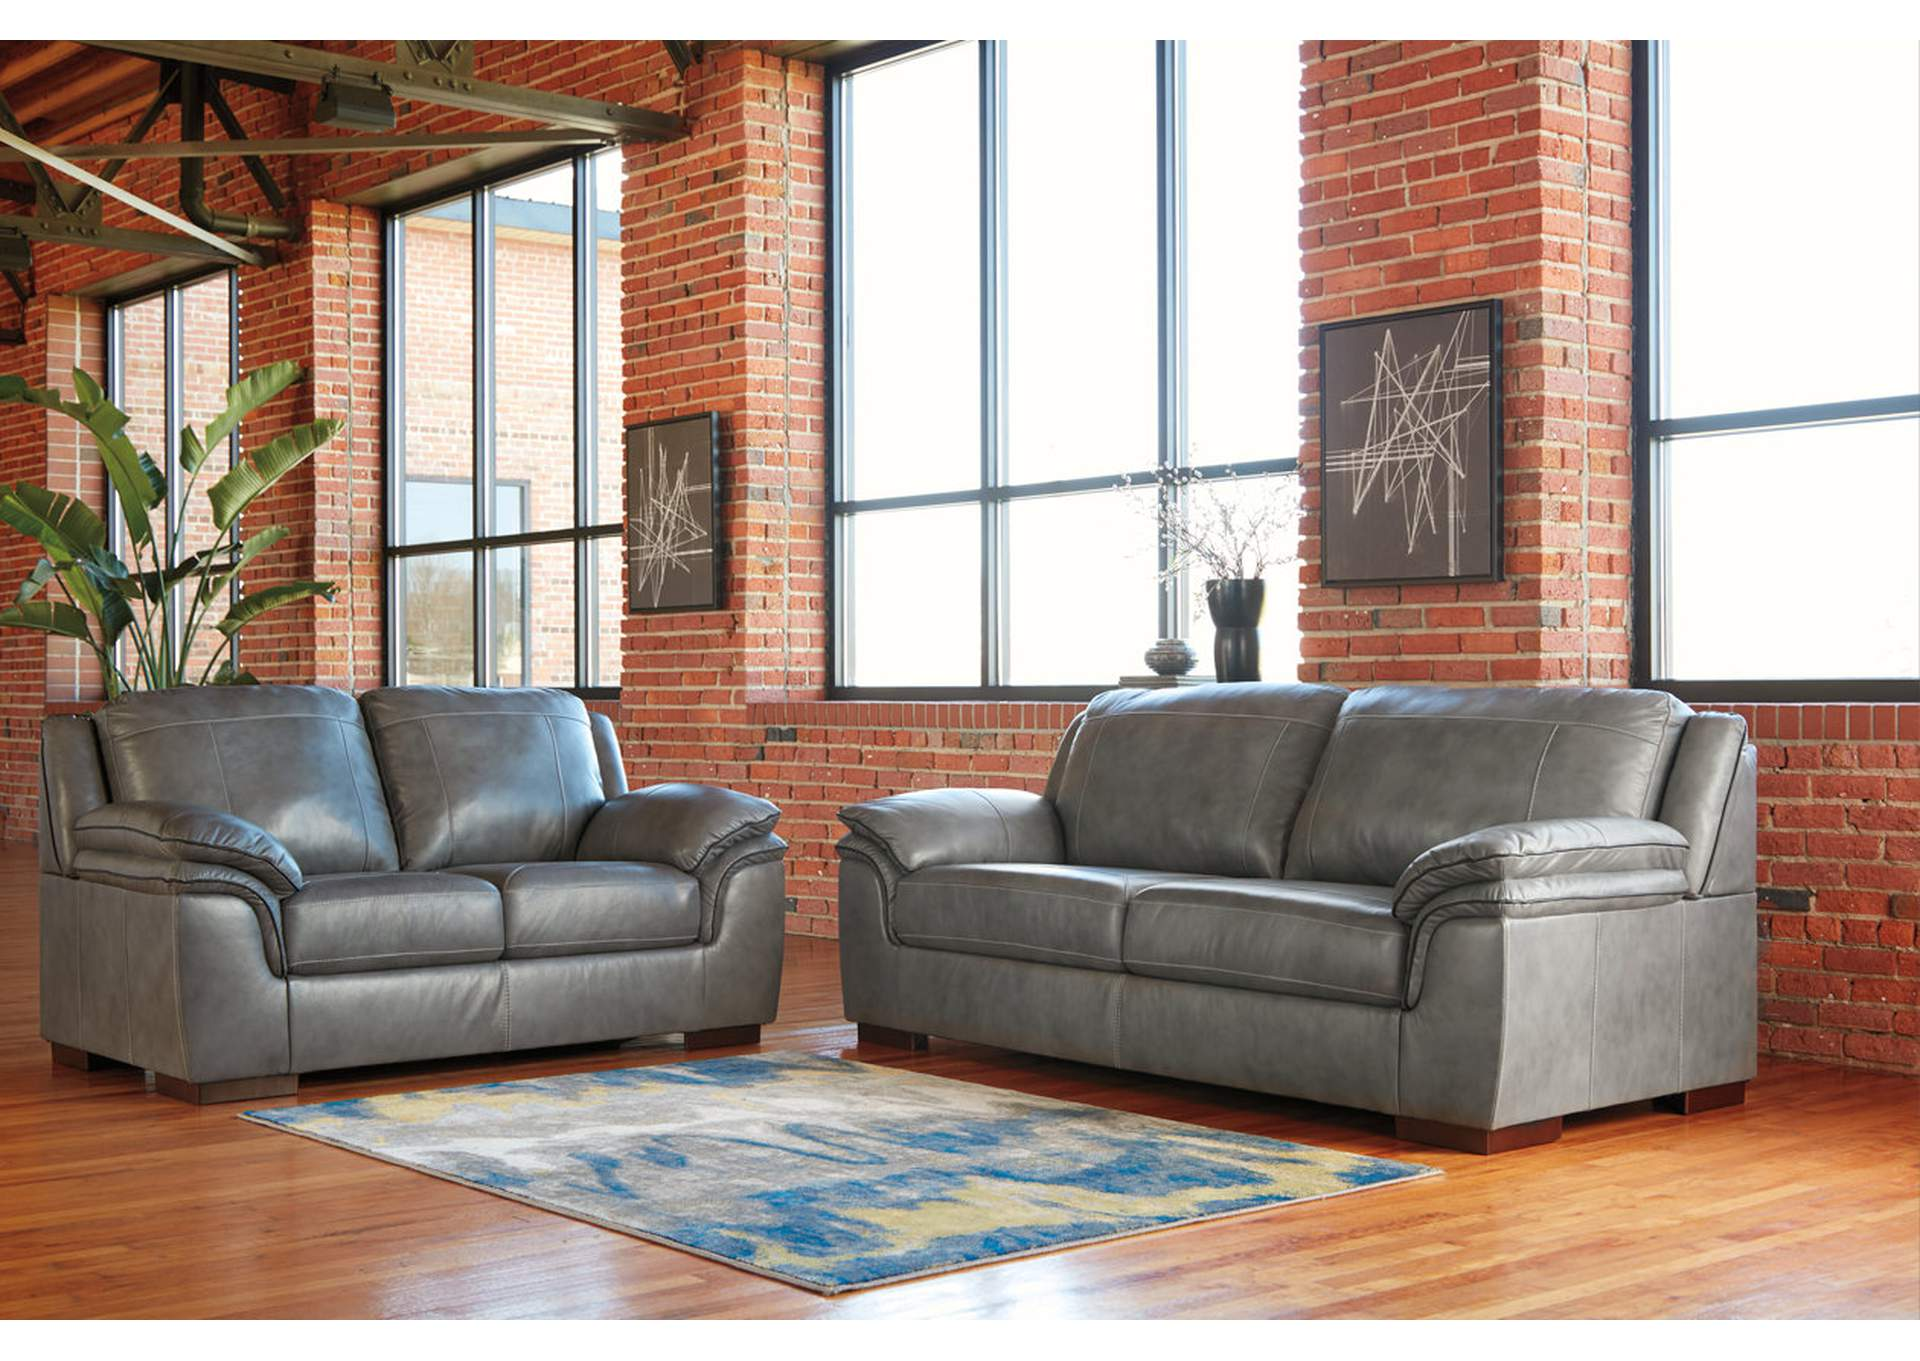 National Furniture Outlet Westwego Model National Furniture Outlet  Westwego La Islebrook Iron Sofa .